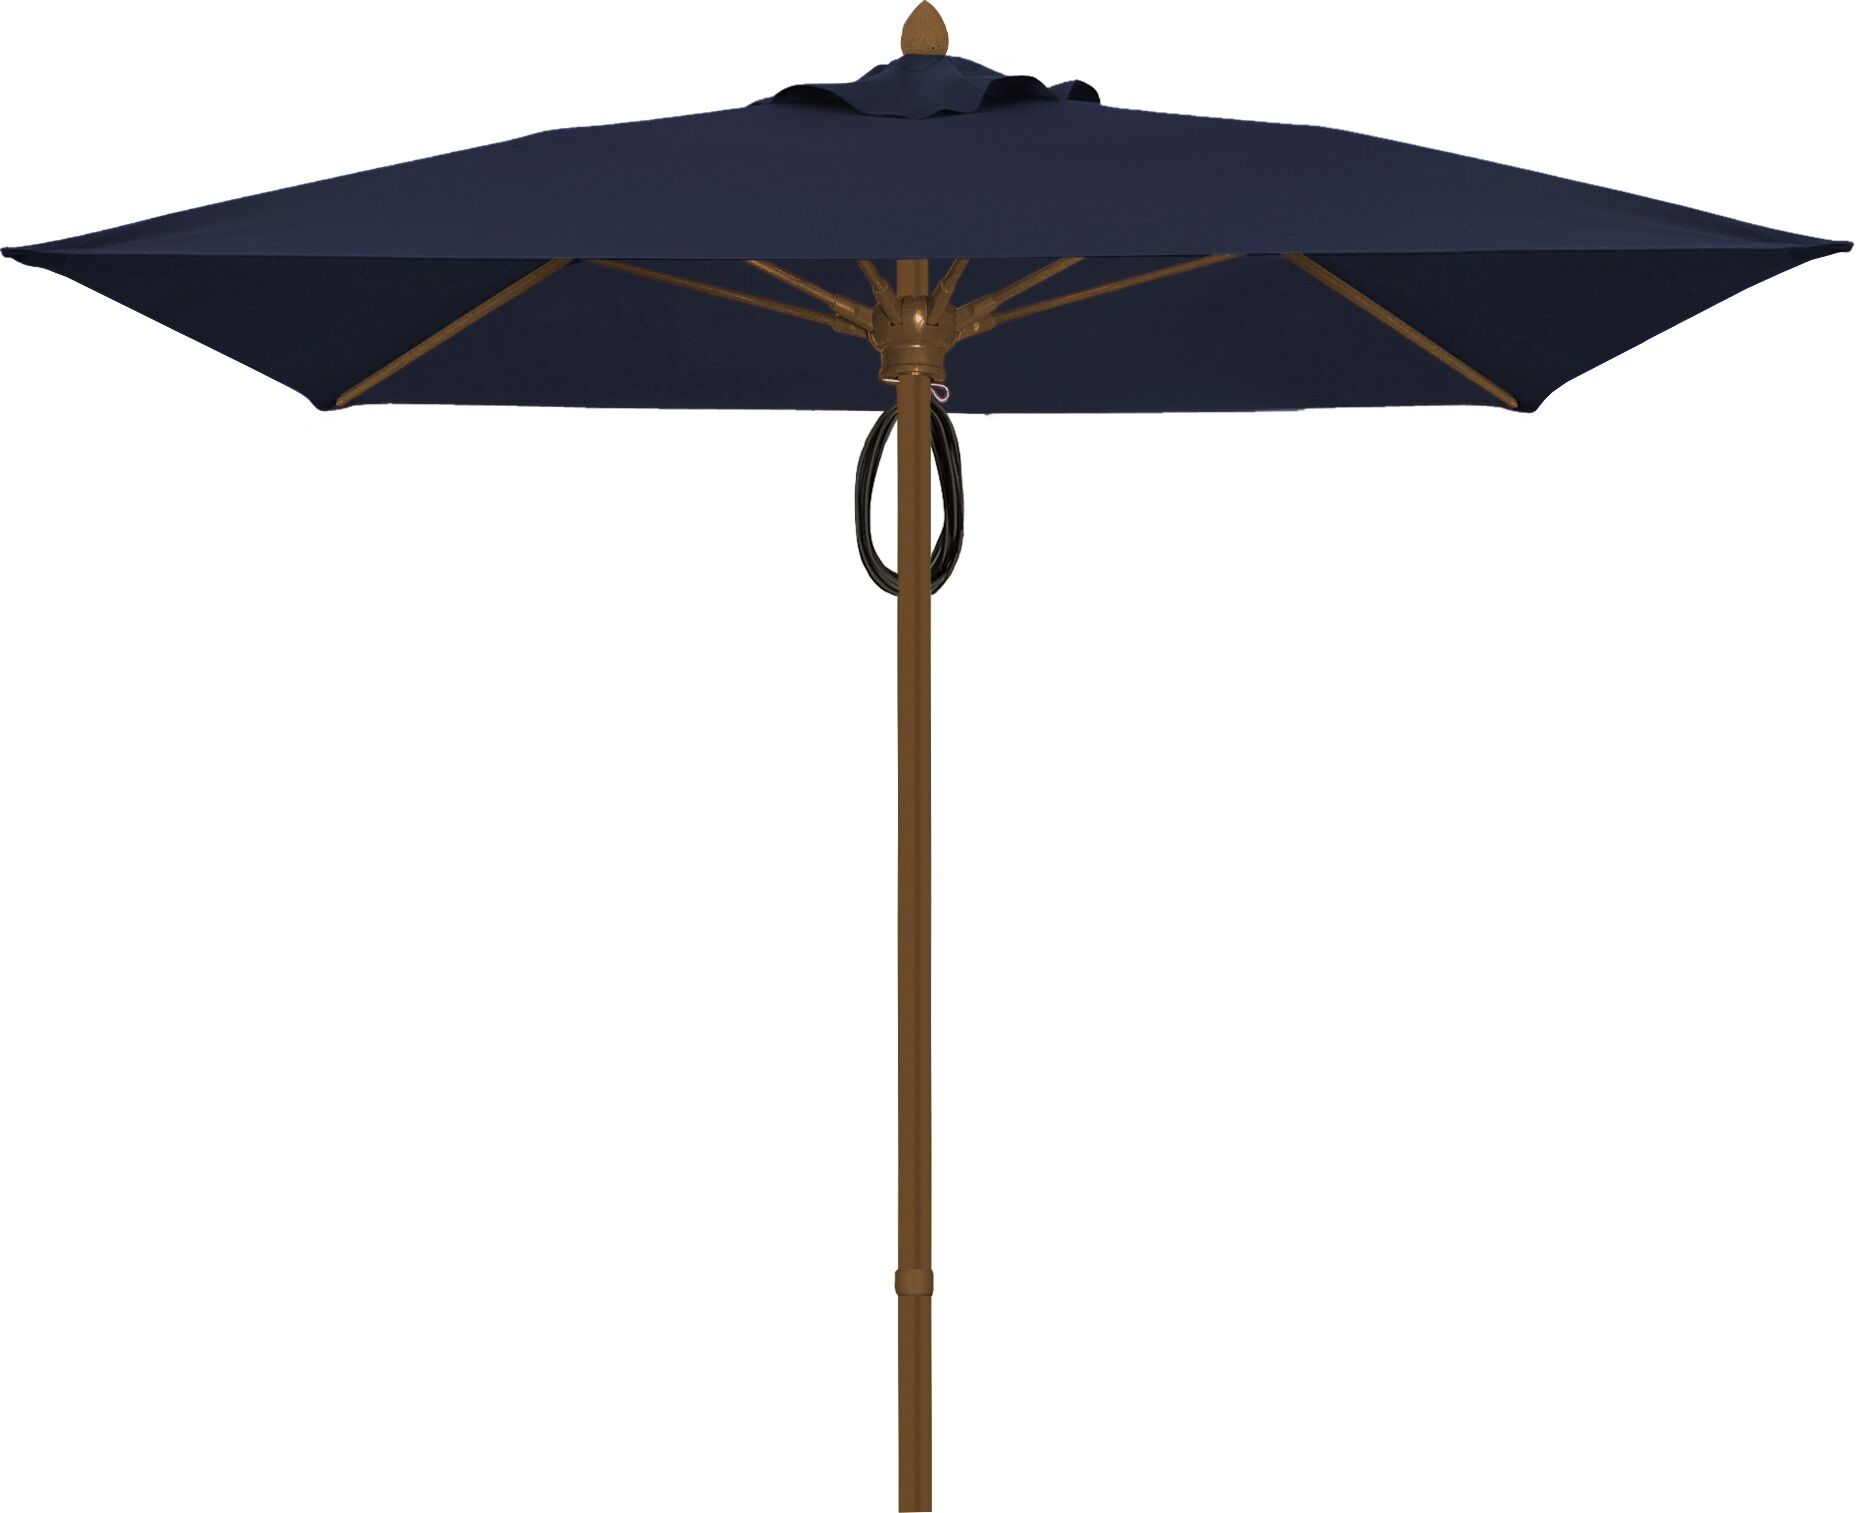 Prestige 6' Square Market Umbrella Frame Finish: Champagne Bronze, Fabric: Captain Navy